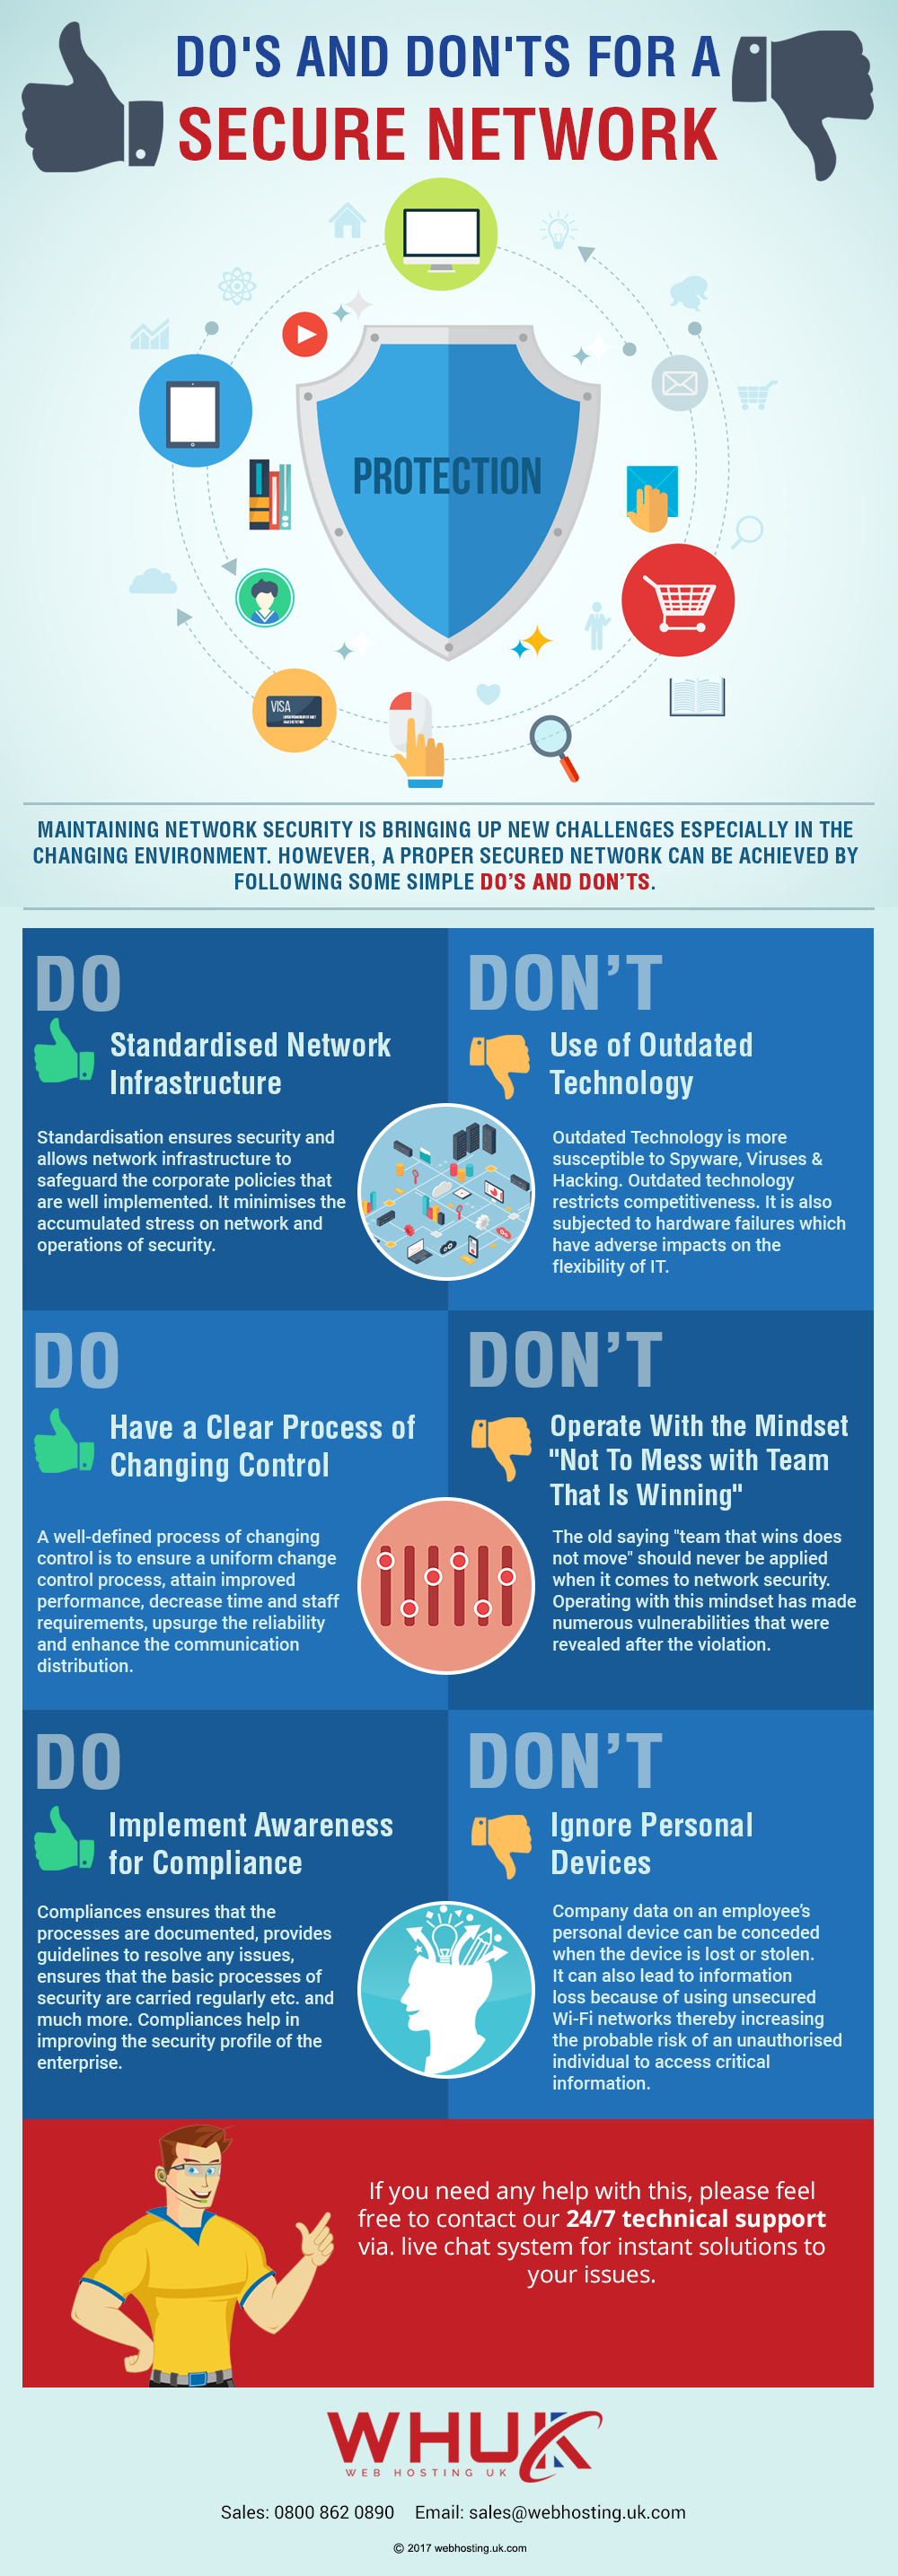 Do's and don'ts for a secure network - infographic